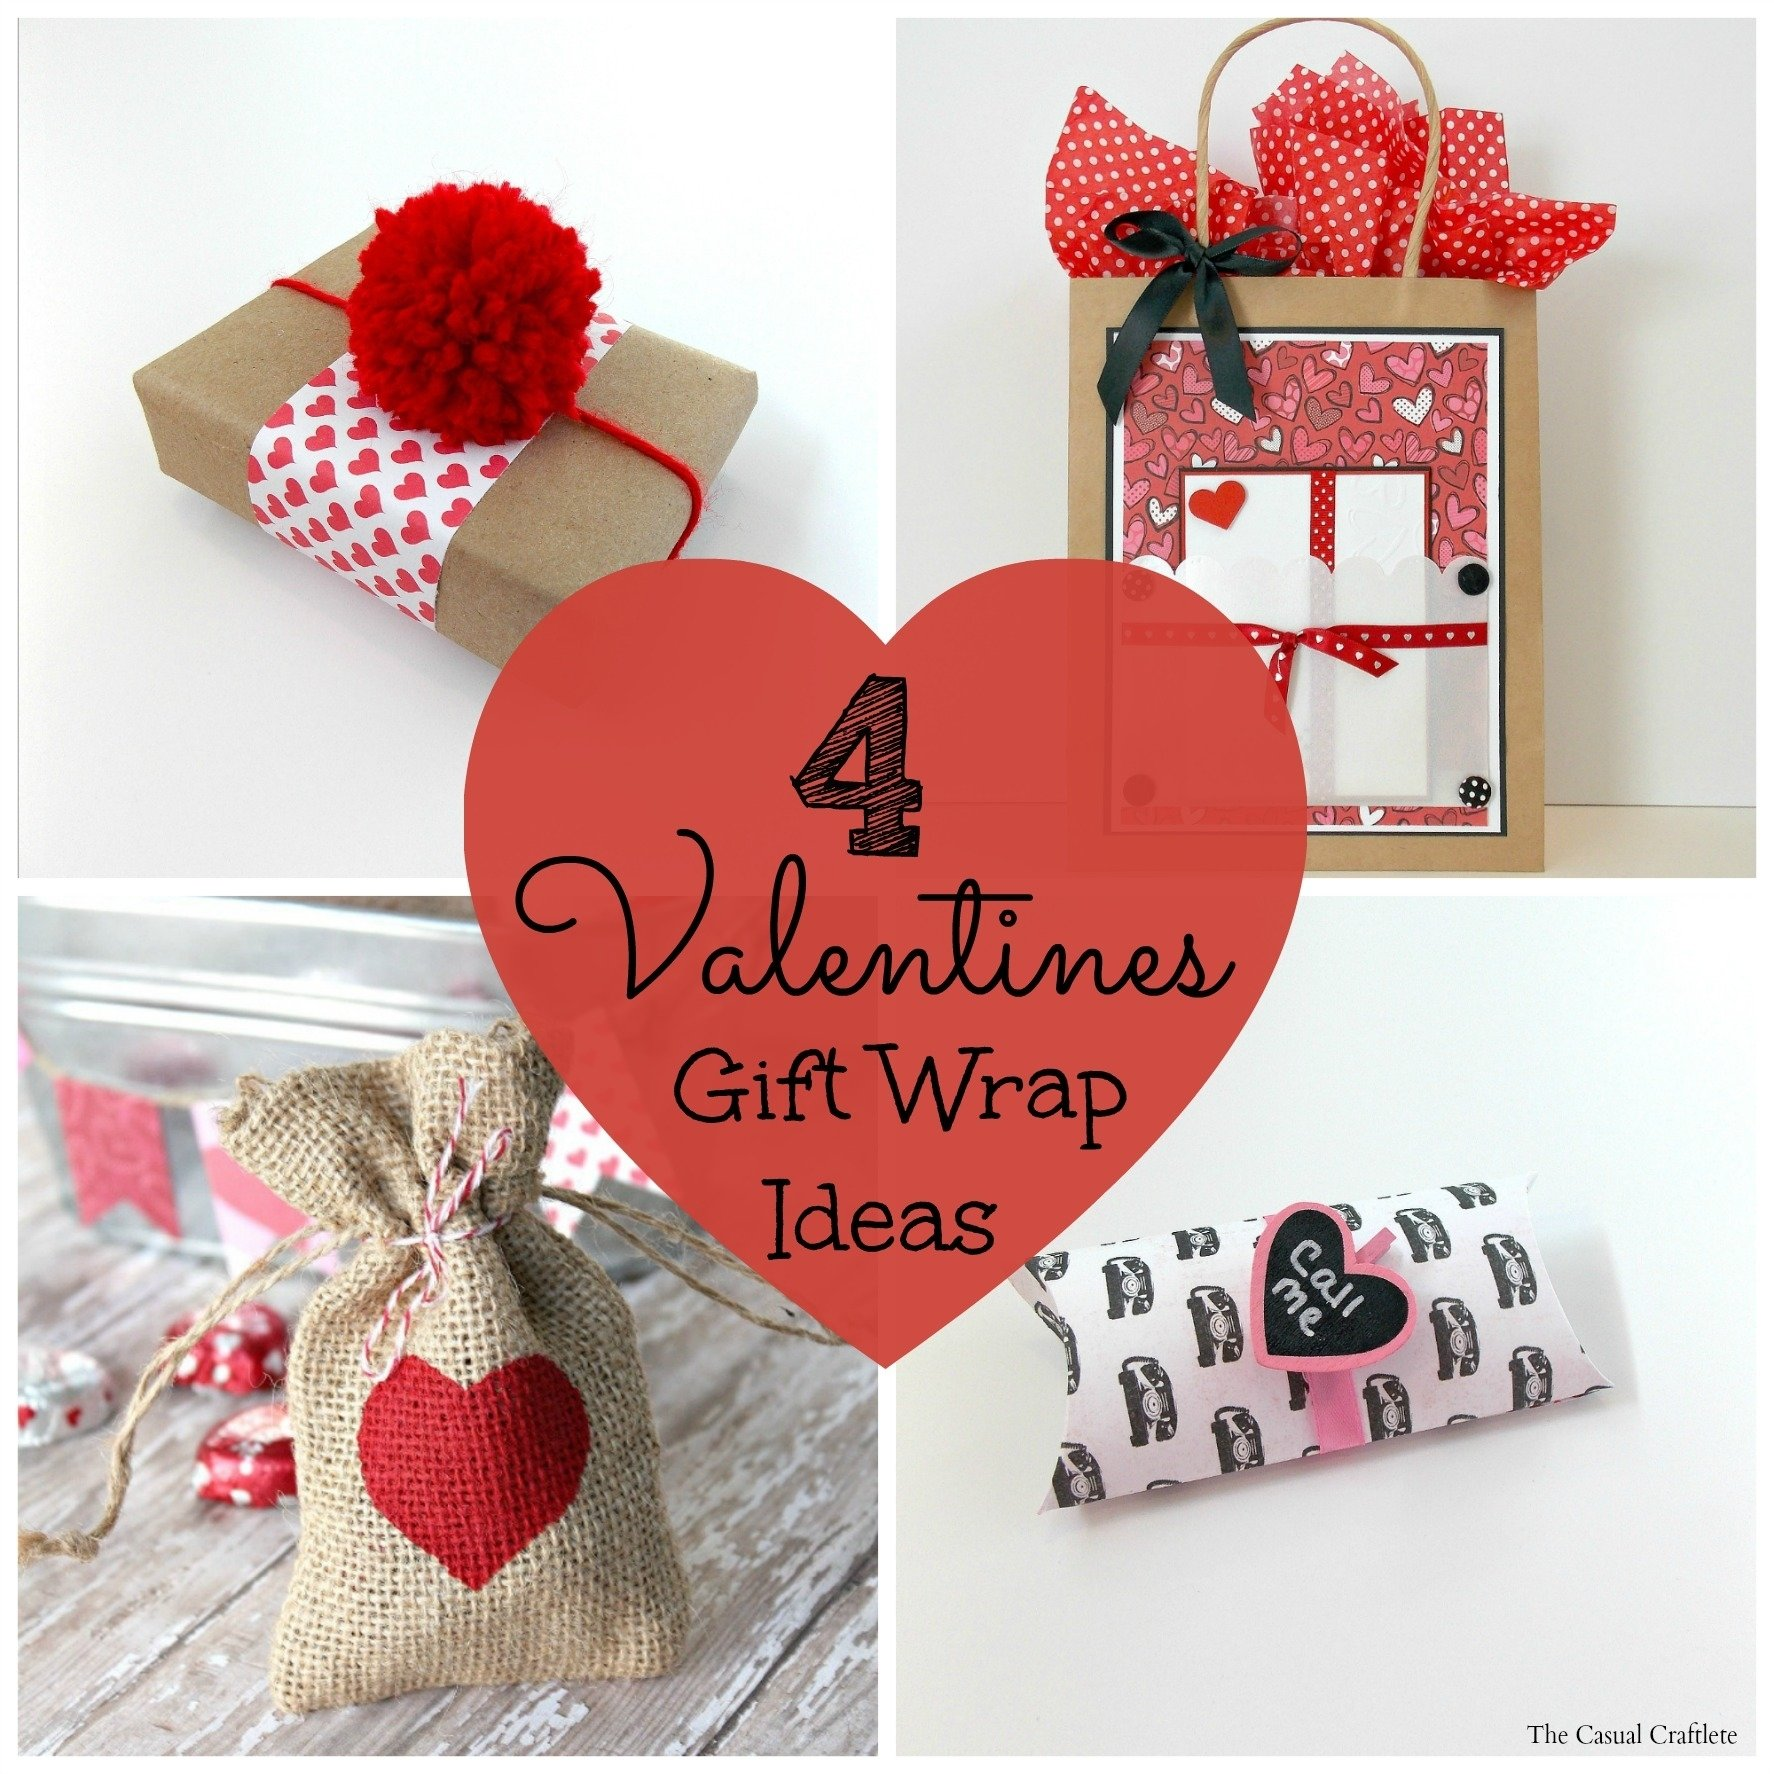 10 Spectacular Valentine Gifts For Her Ideas valentines day gift ideas for girlfriend 2018 new ideas